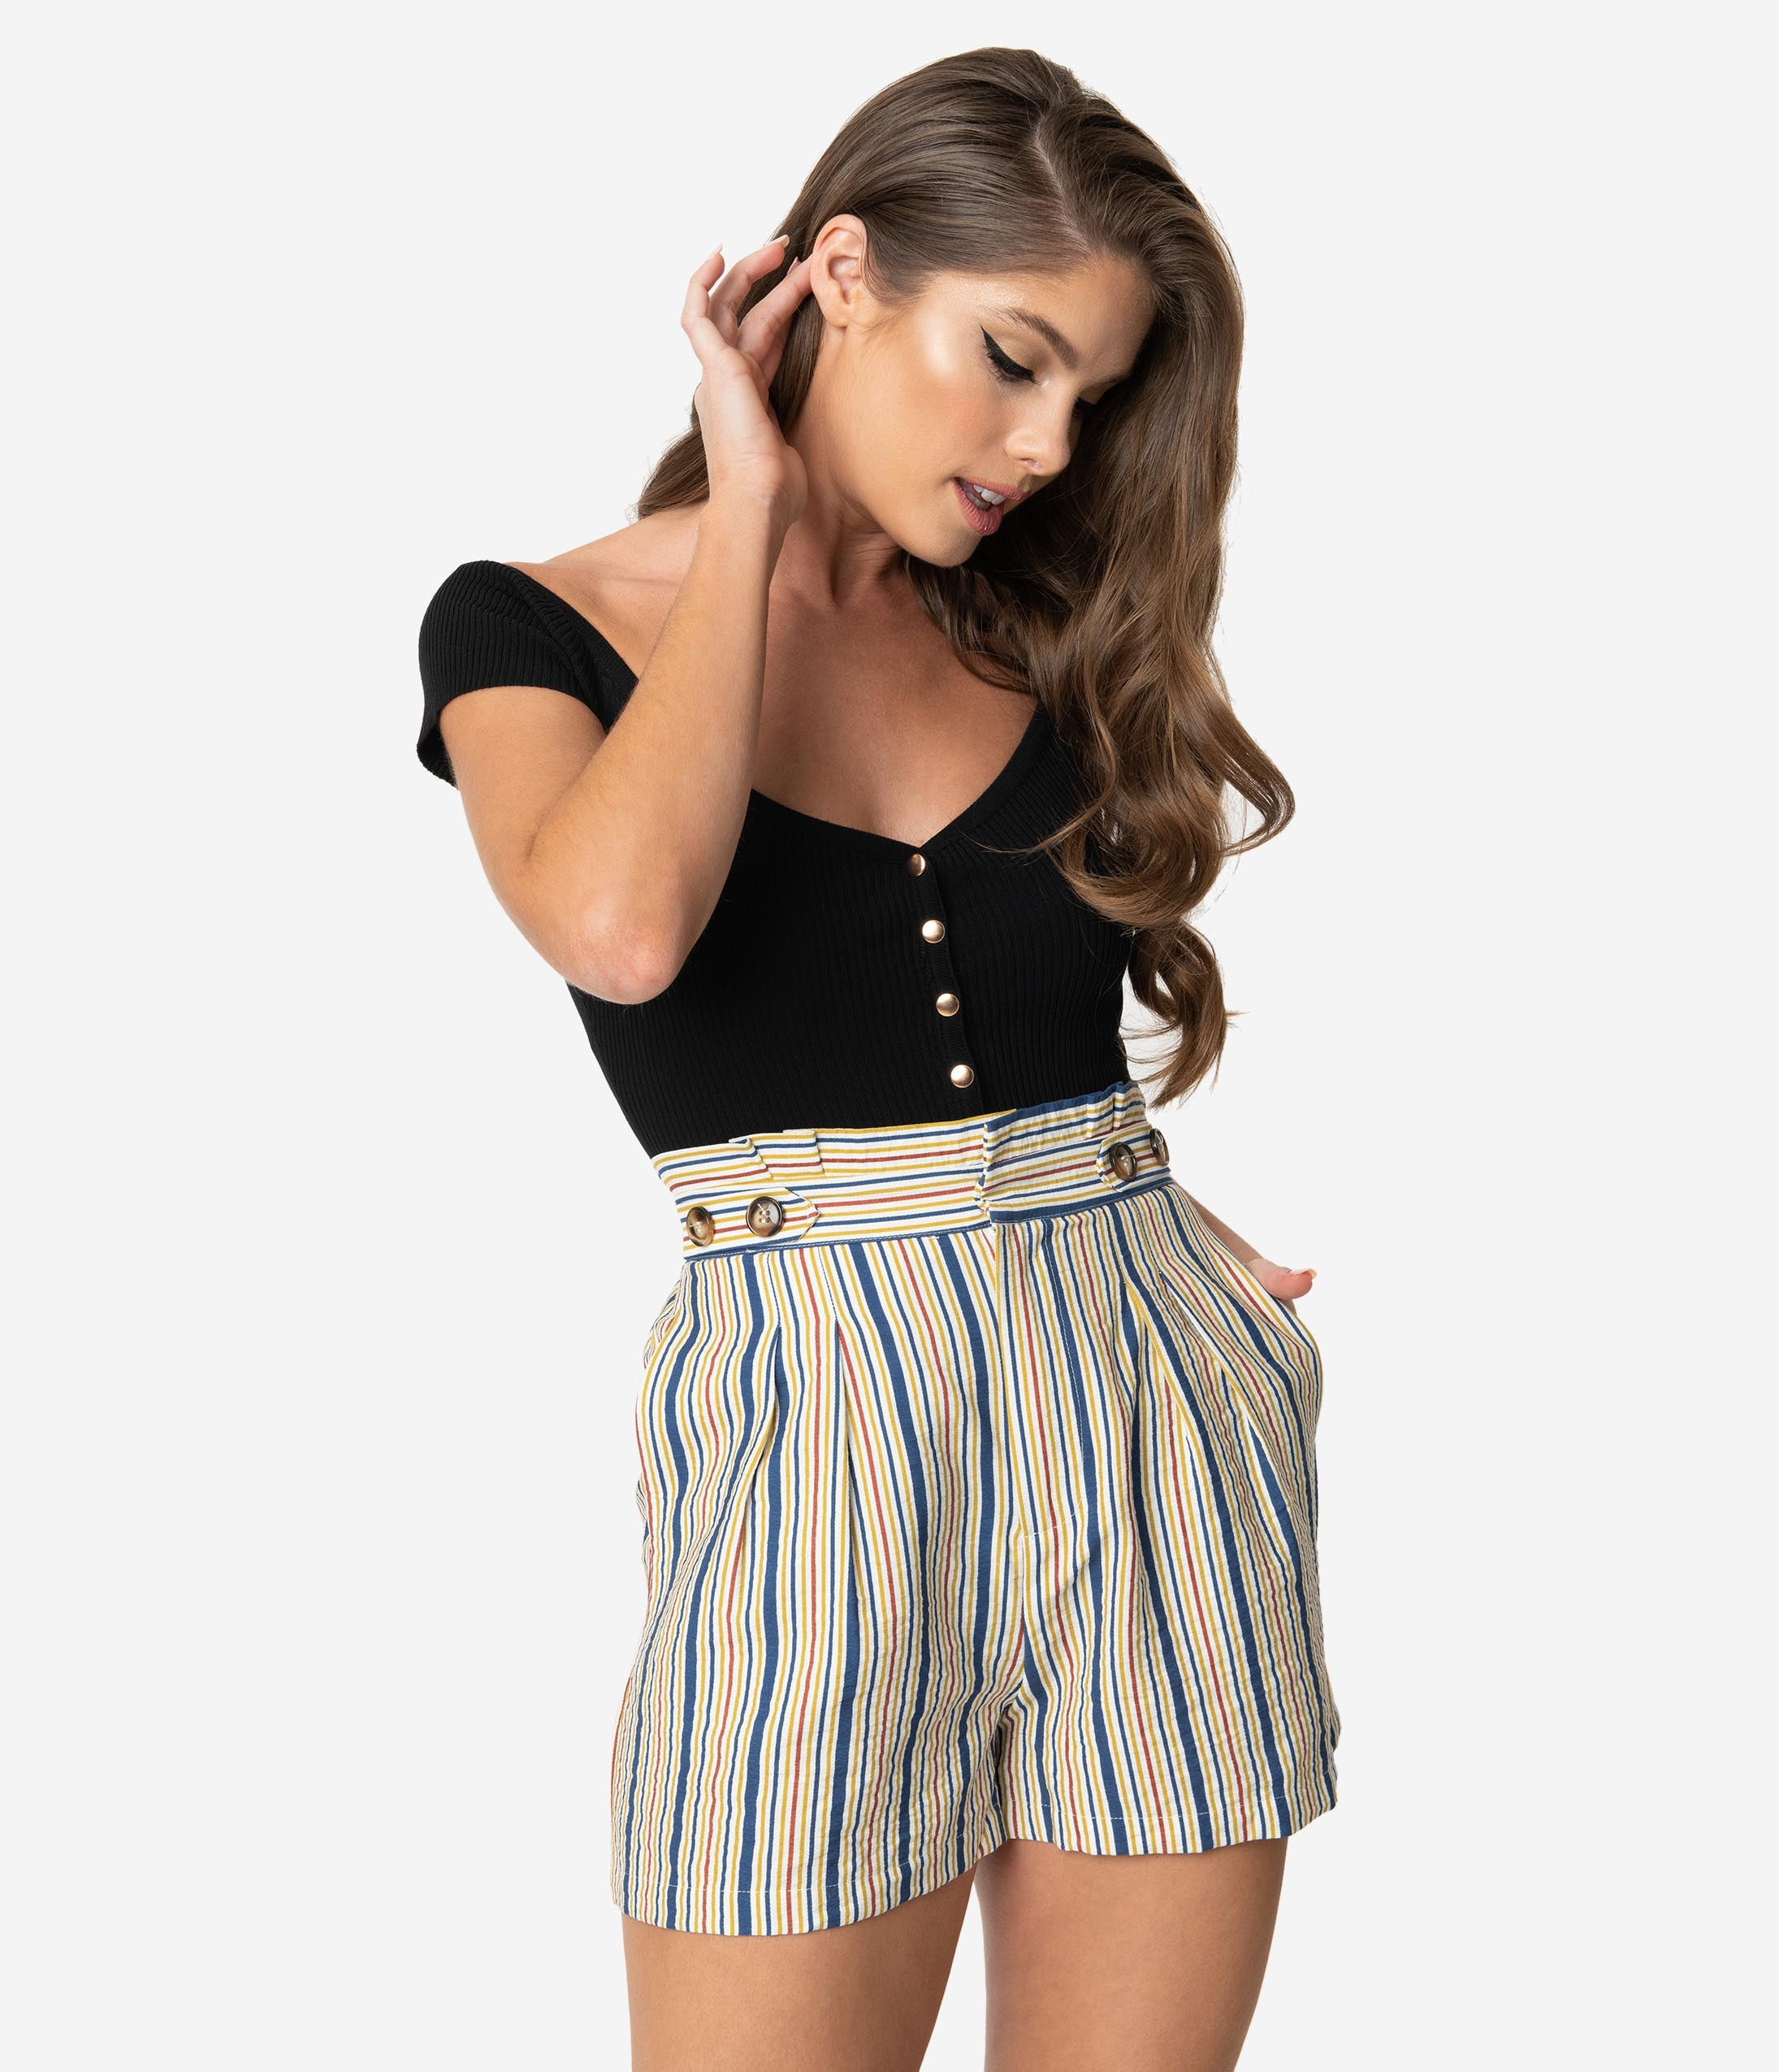 1950s Shorts History | Summer Clothing Retro Style Multicolor Striped High Waist Pleated Shorts $44.00 AT vintagedancer.com